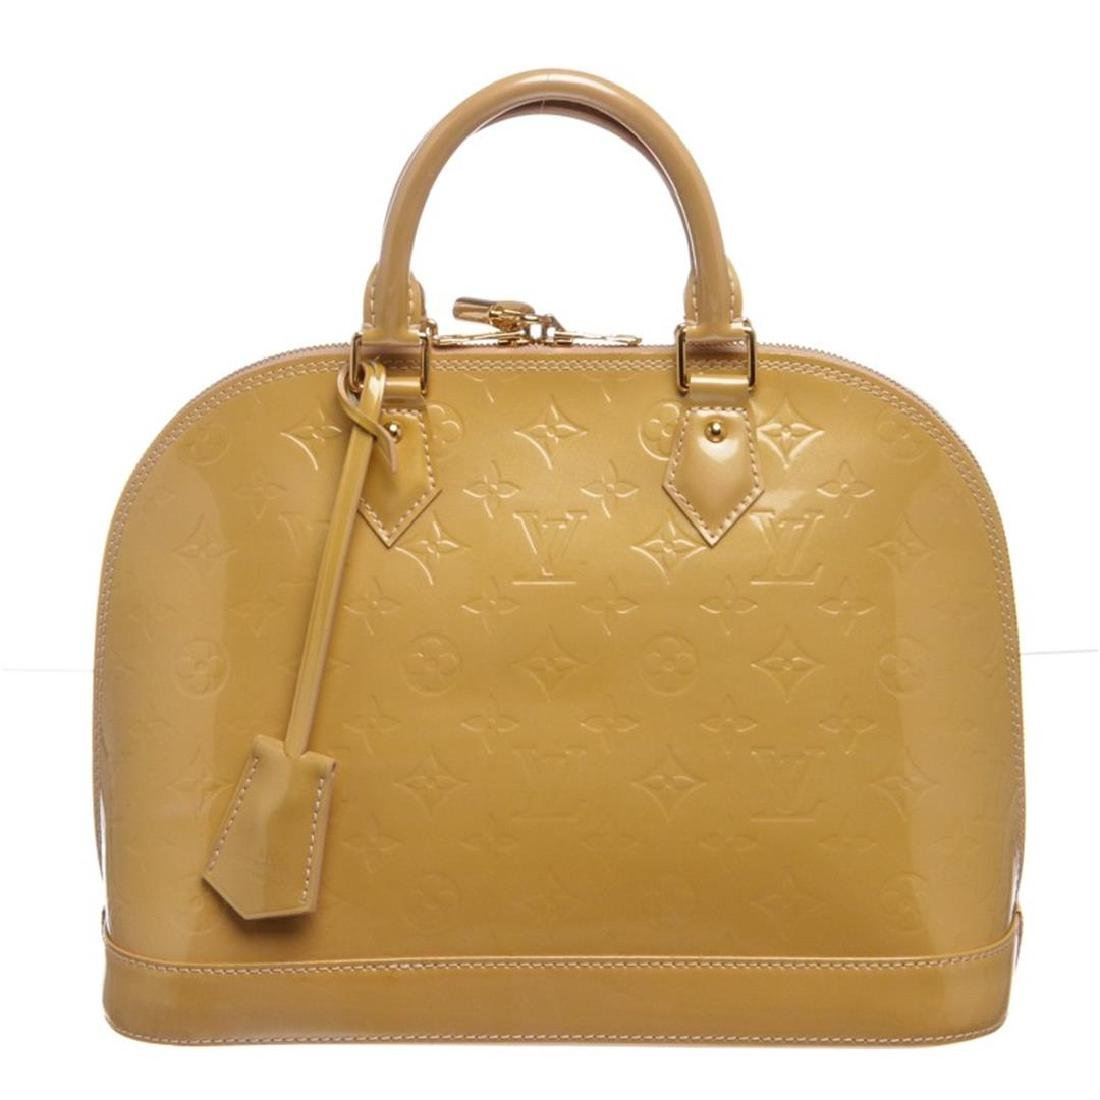 Louis Vuitton Yellow Vernis Leather Monogram Alma PM